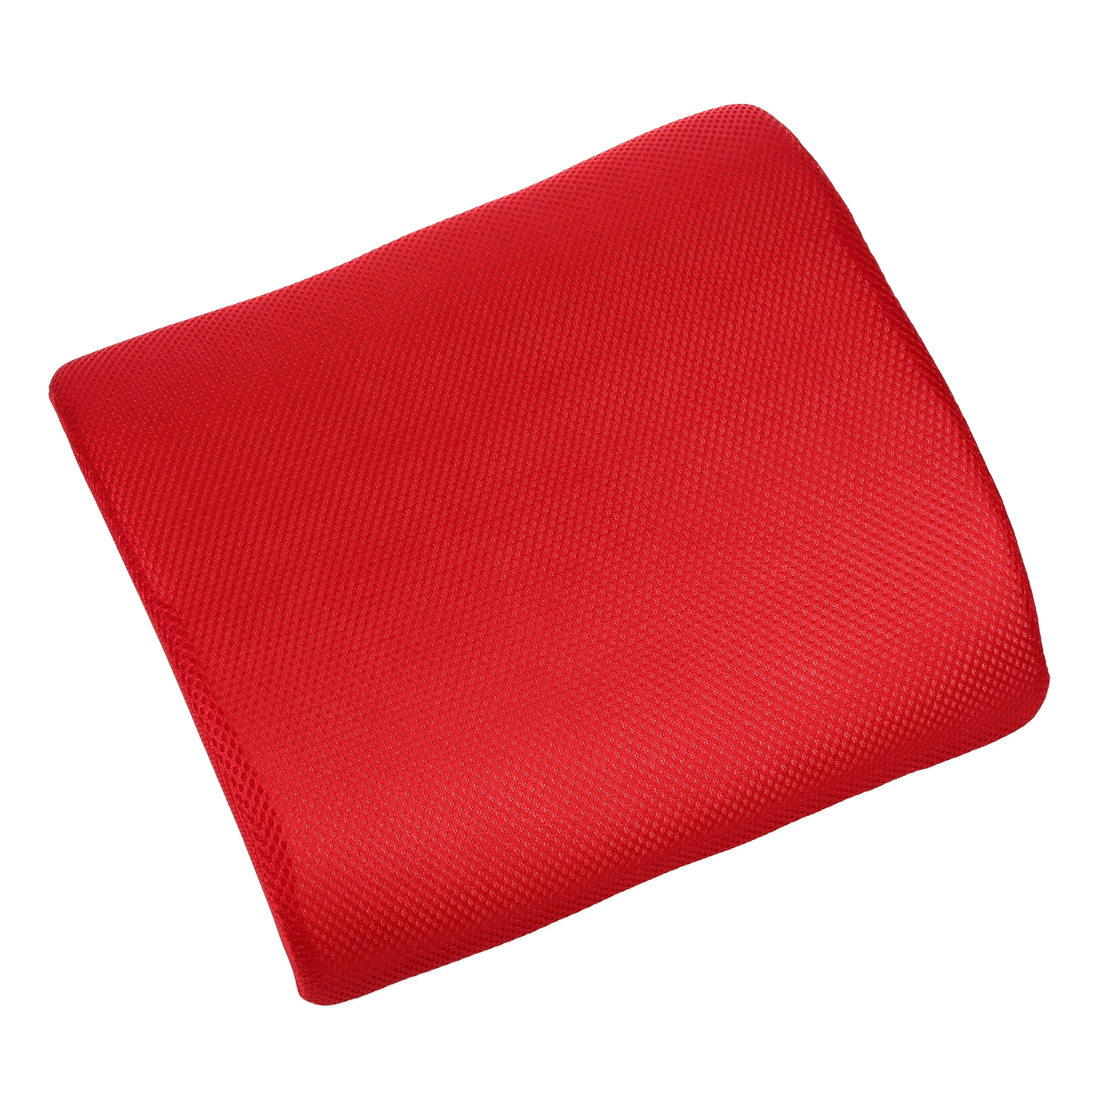 Car Office Home Memory Foam Seat Chair Lumbar Back Support Cushion Pillow Red|back support cushion|lumbar back support cushion|lumbar support back pillow - title=